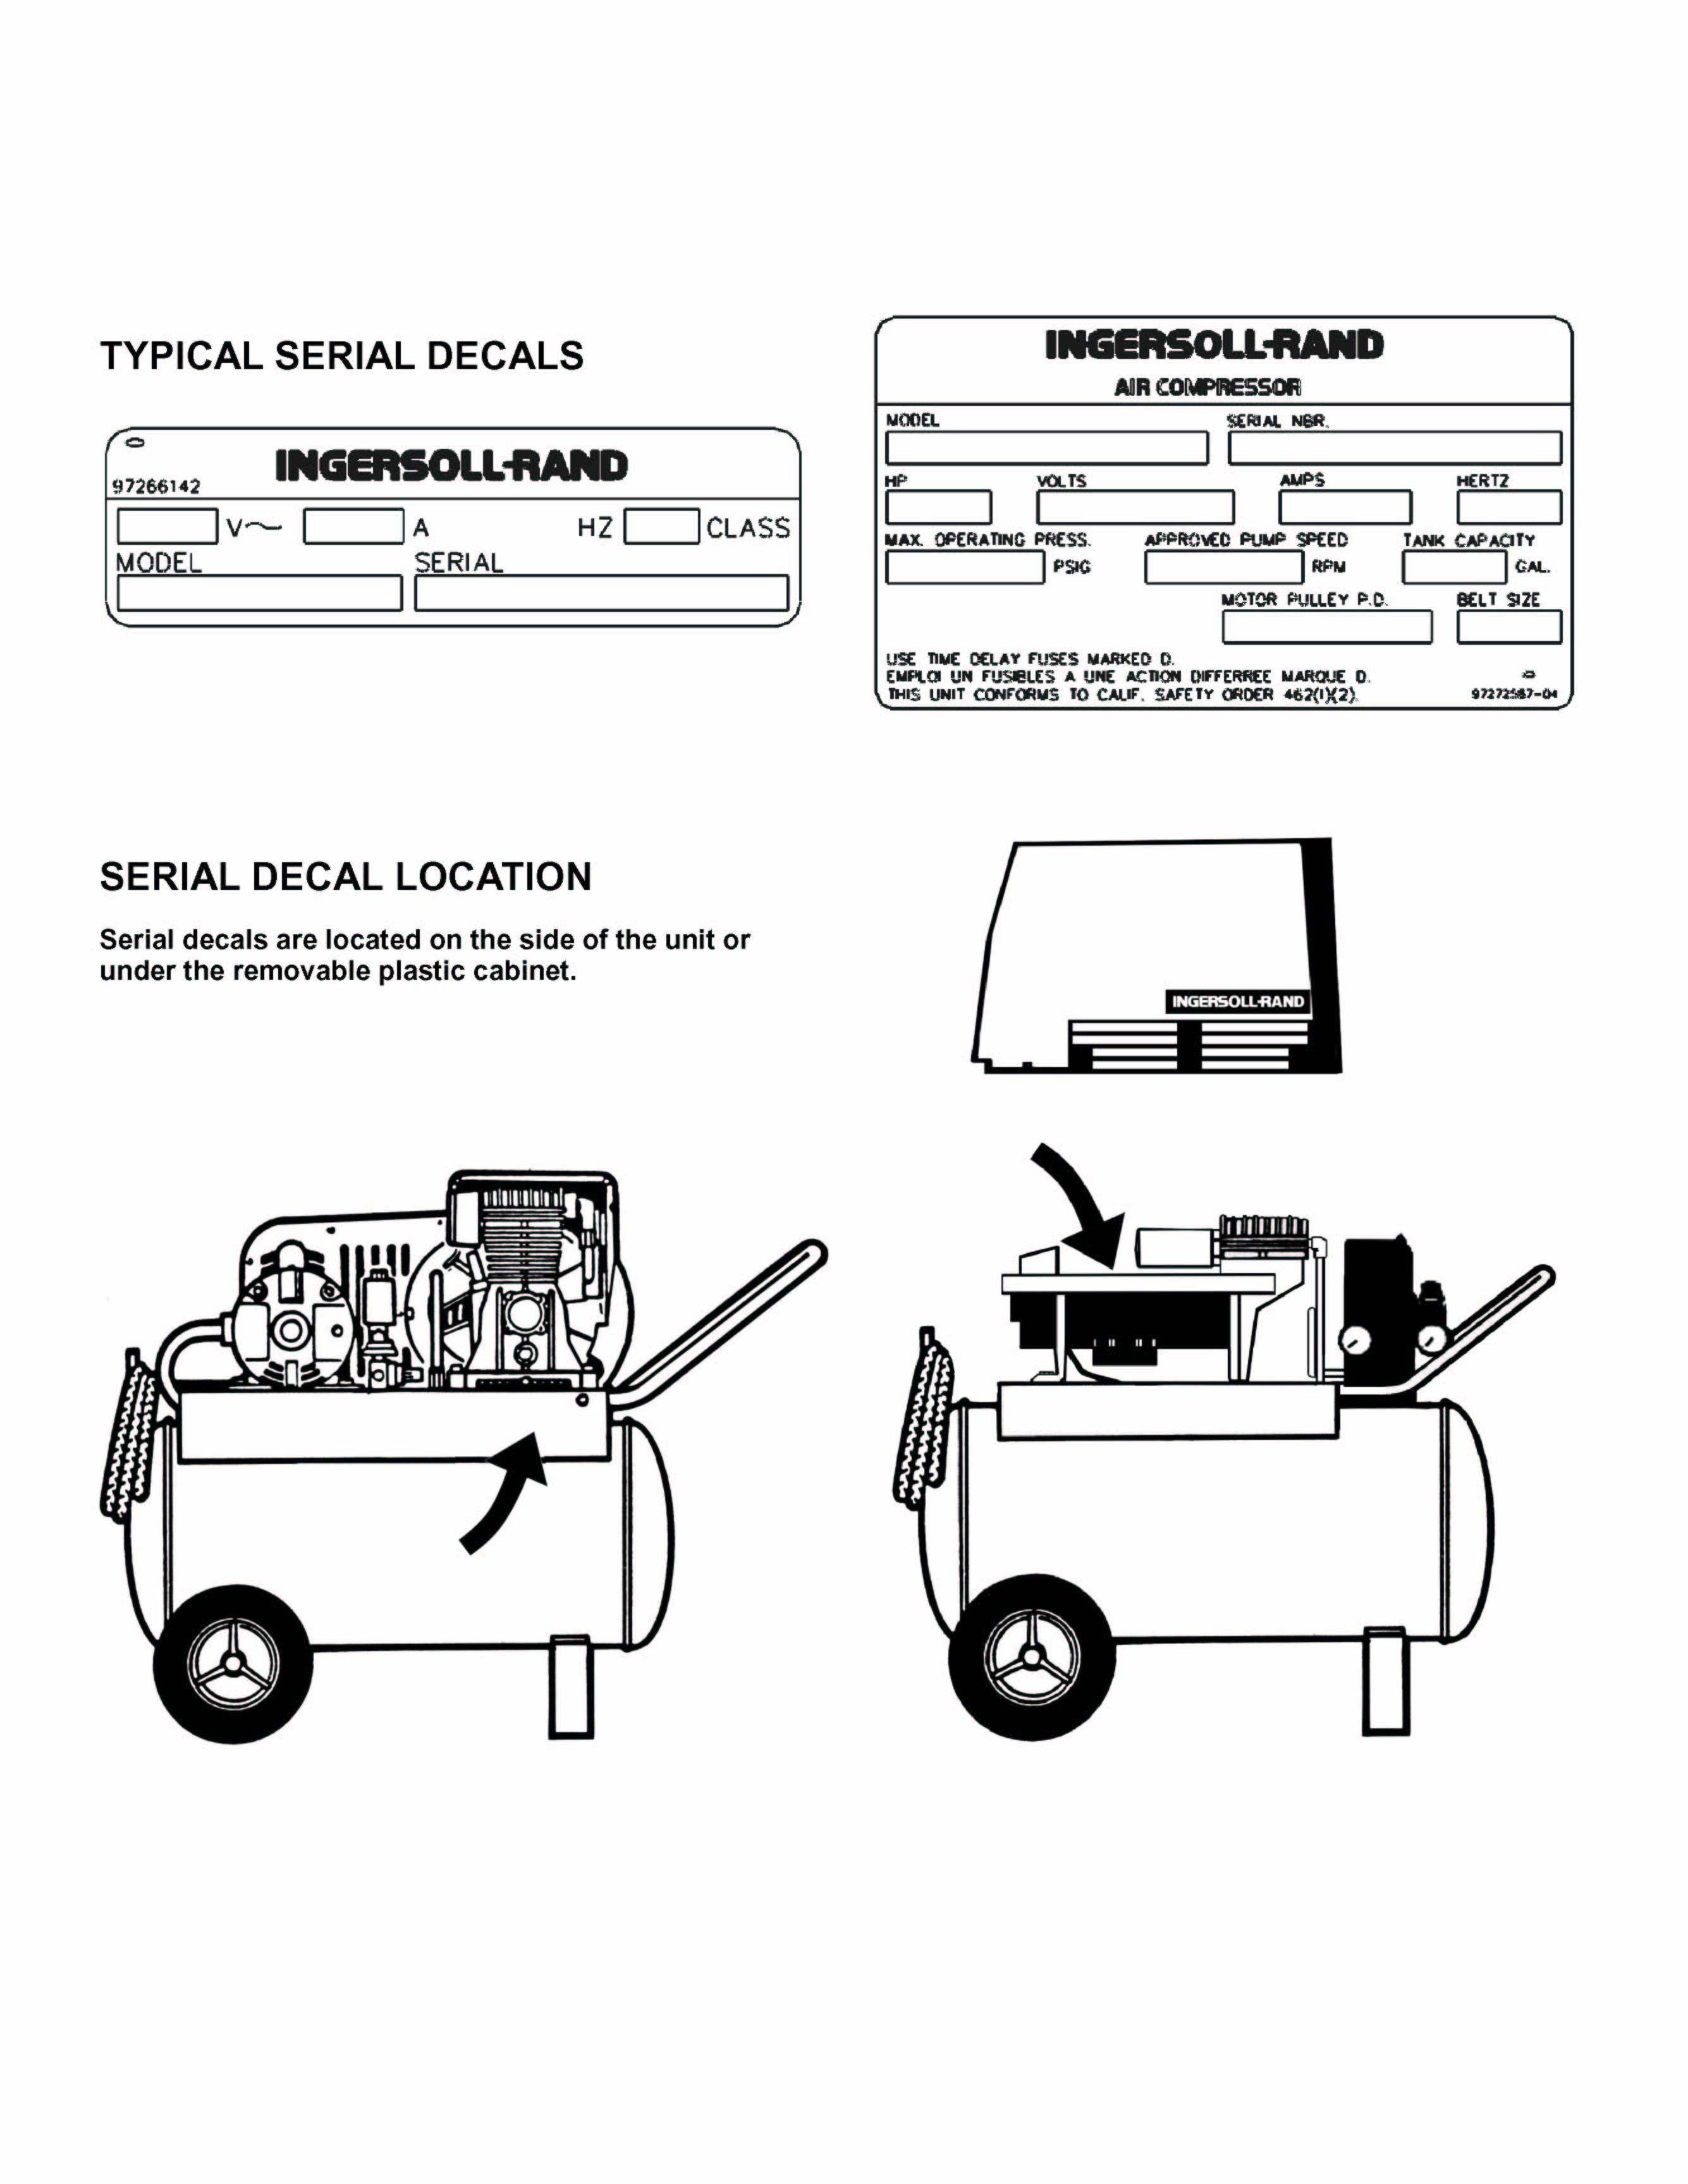 Picture of Recalled Air Compressor Decals